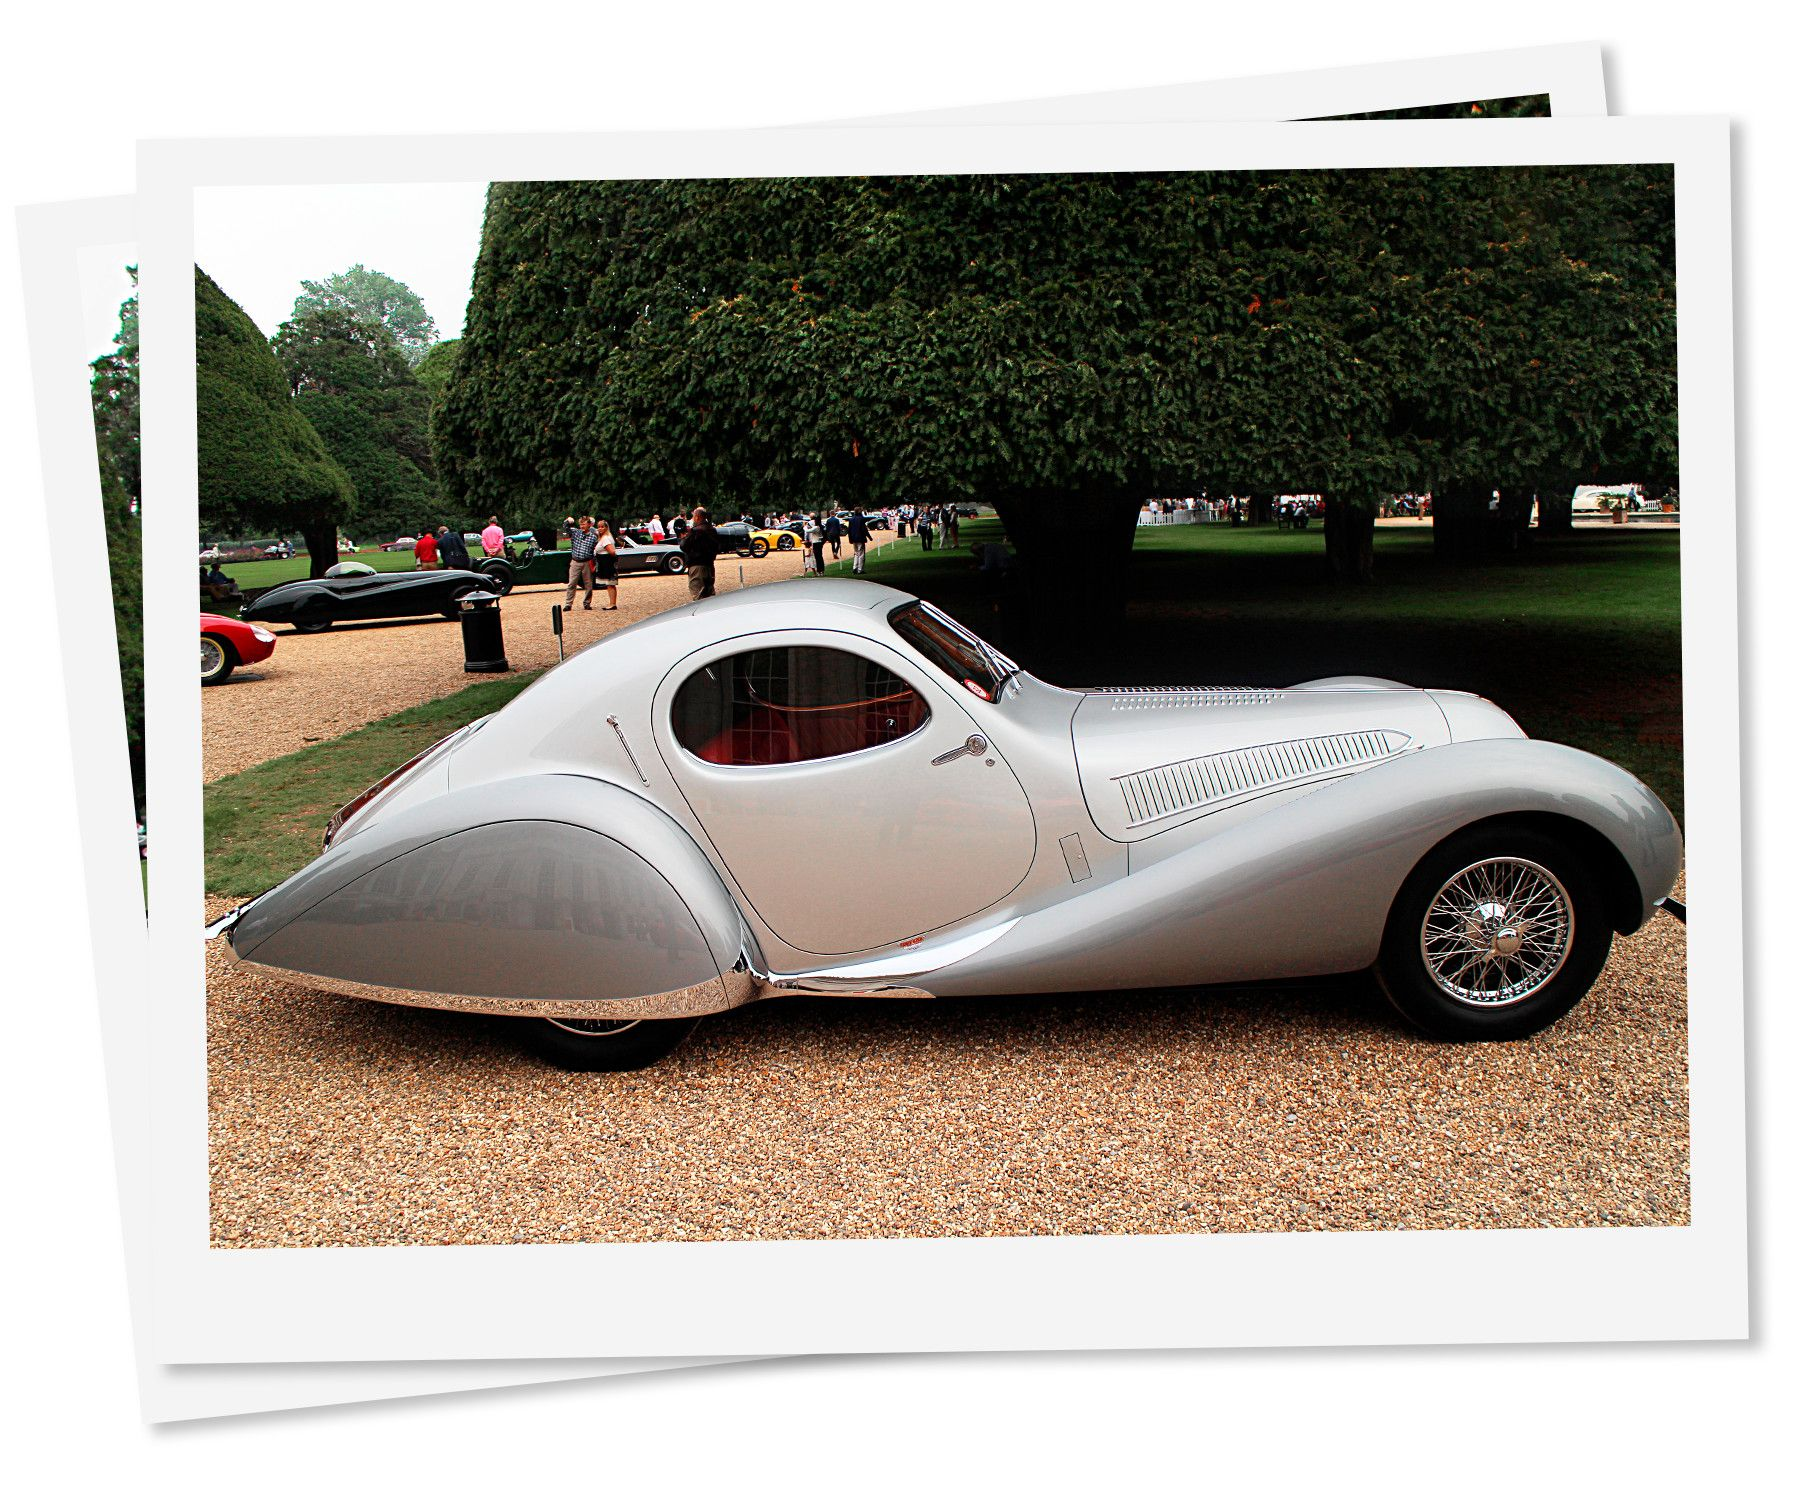 1938 Talbot-Lago T150-C SS Stolen - Tracking Down the $7 6